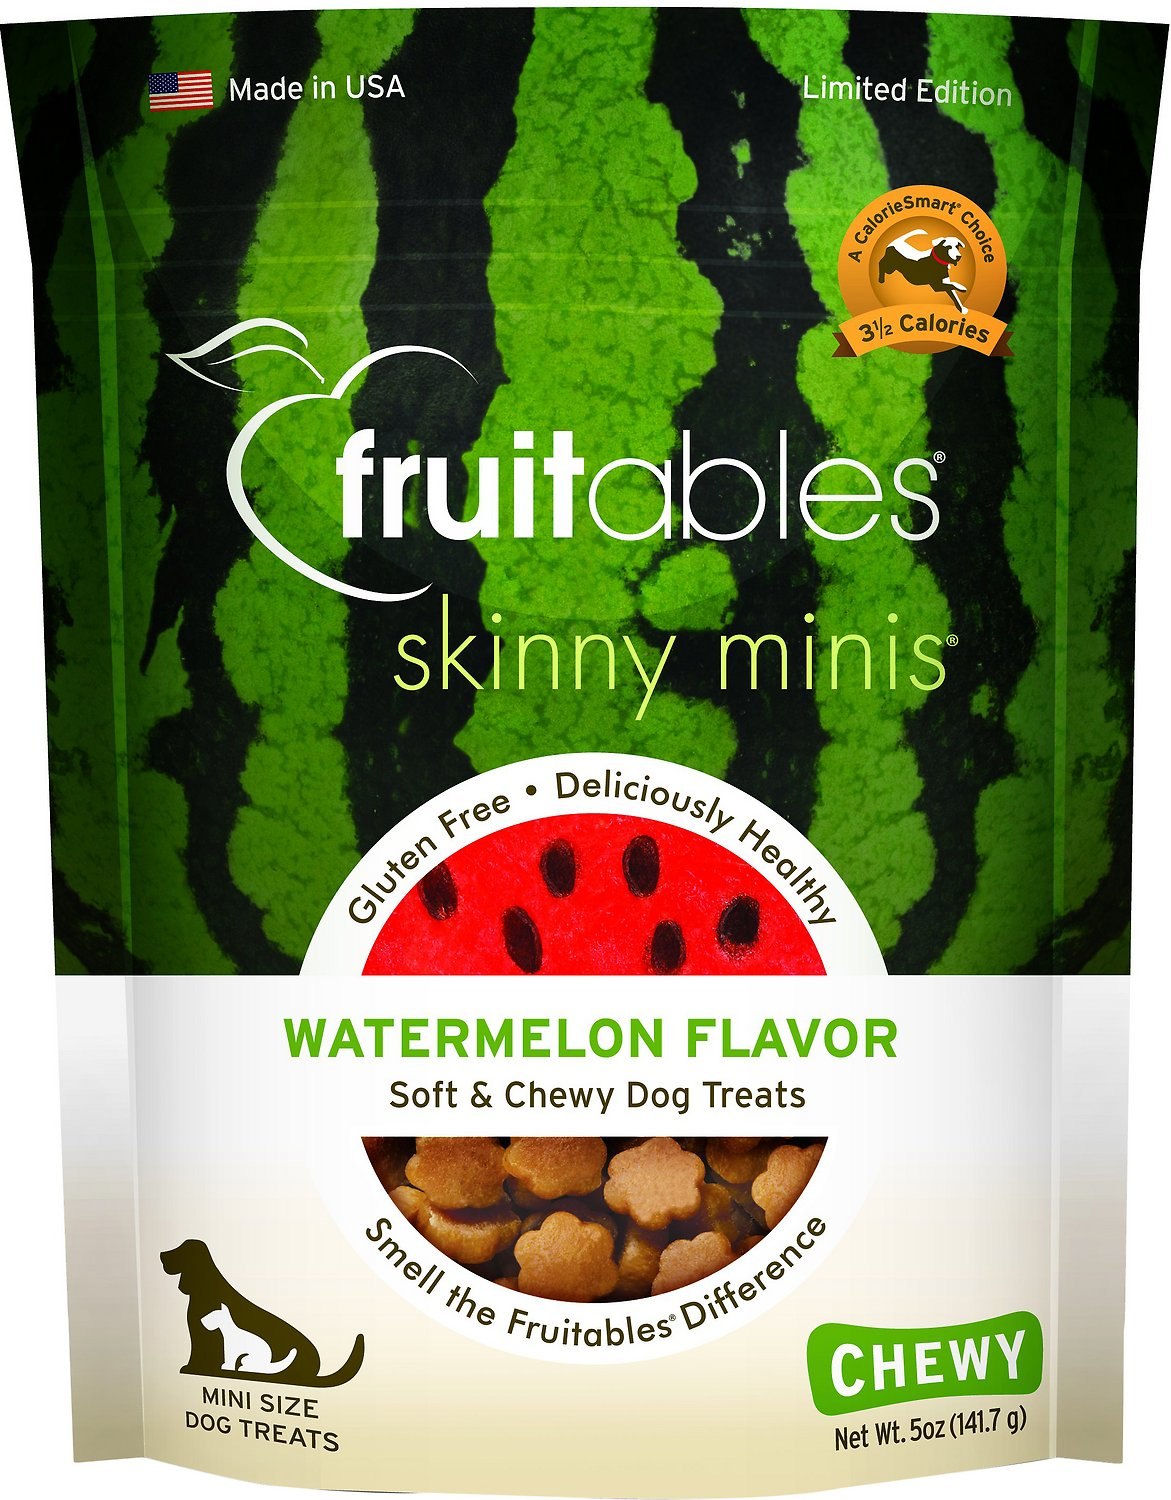 Fruitables Skinny Minis Watermelon Flavor Soft & Chewy Dog Treats, 5-oz bag